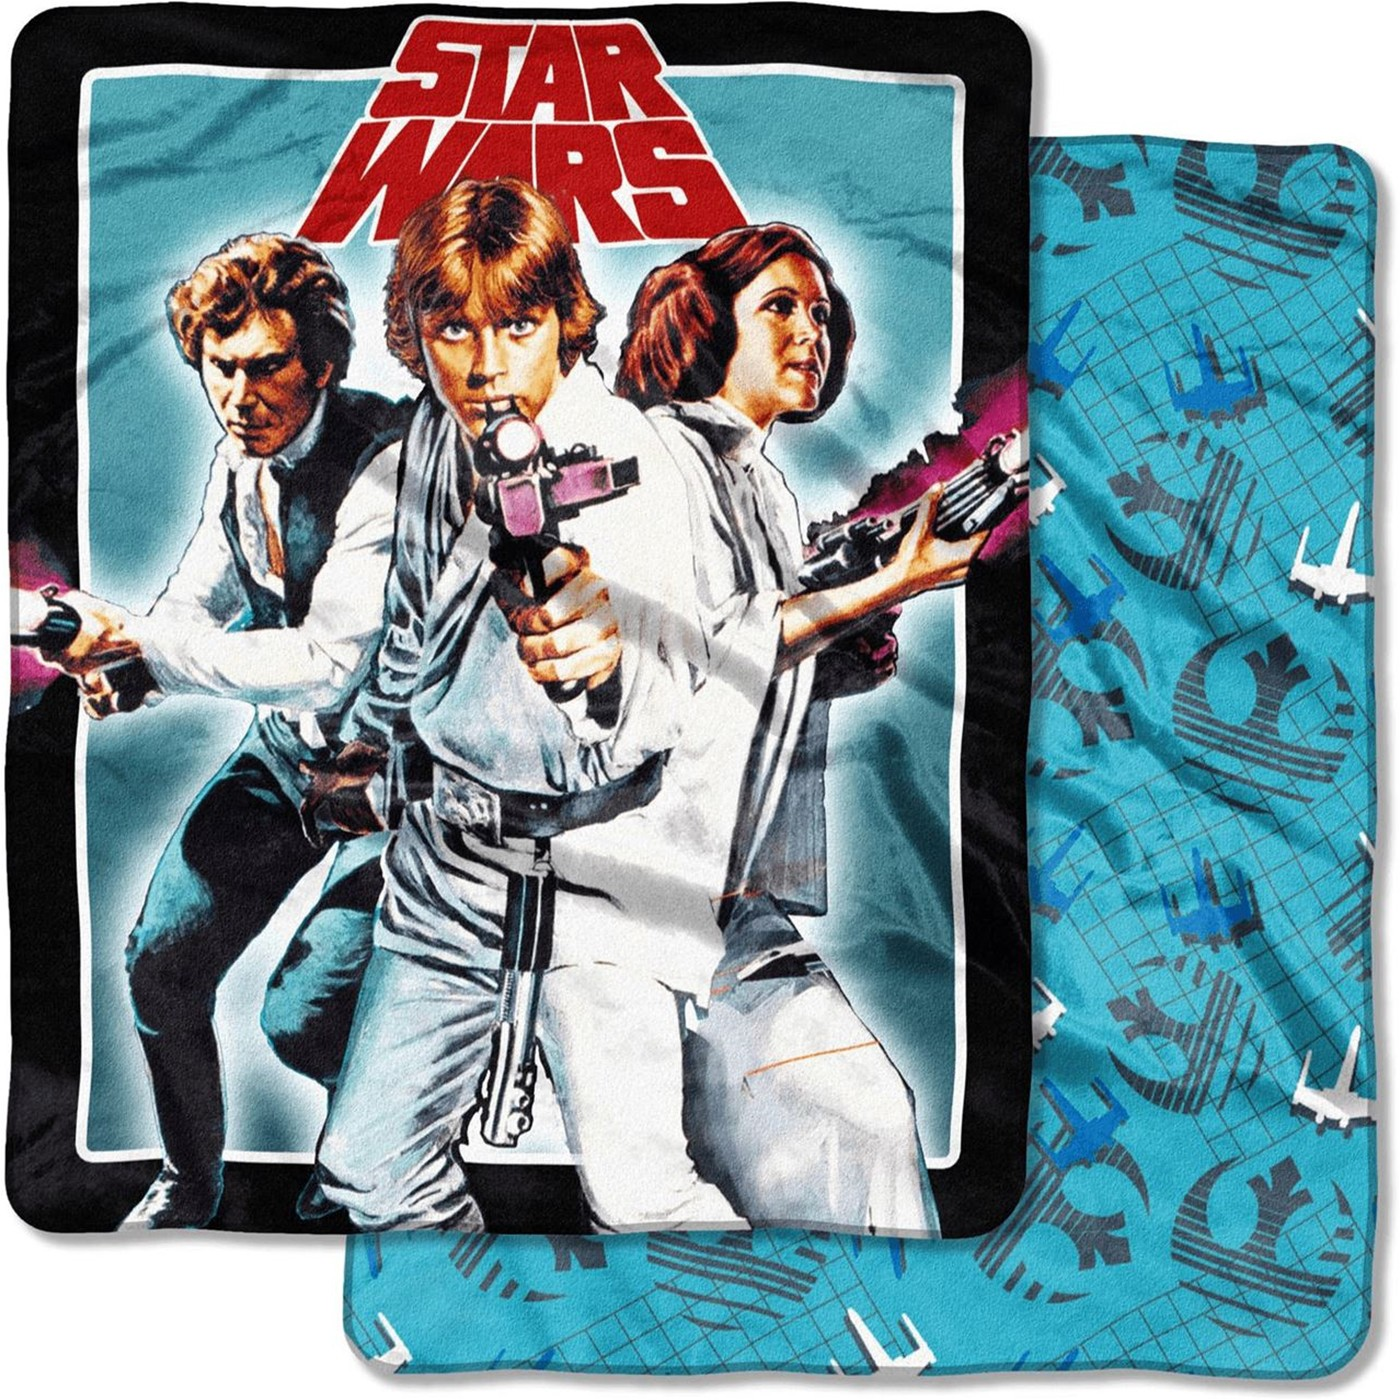 Star Wars Classic Hopeful Trio Blanket